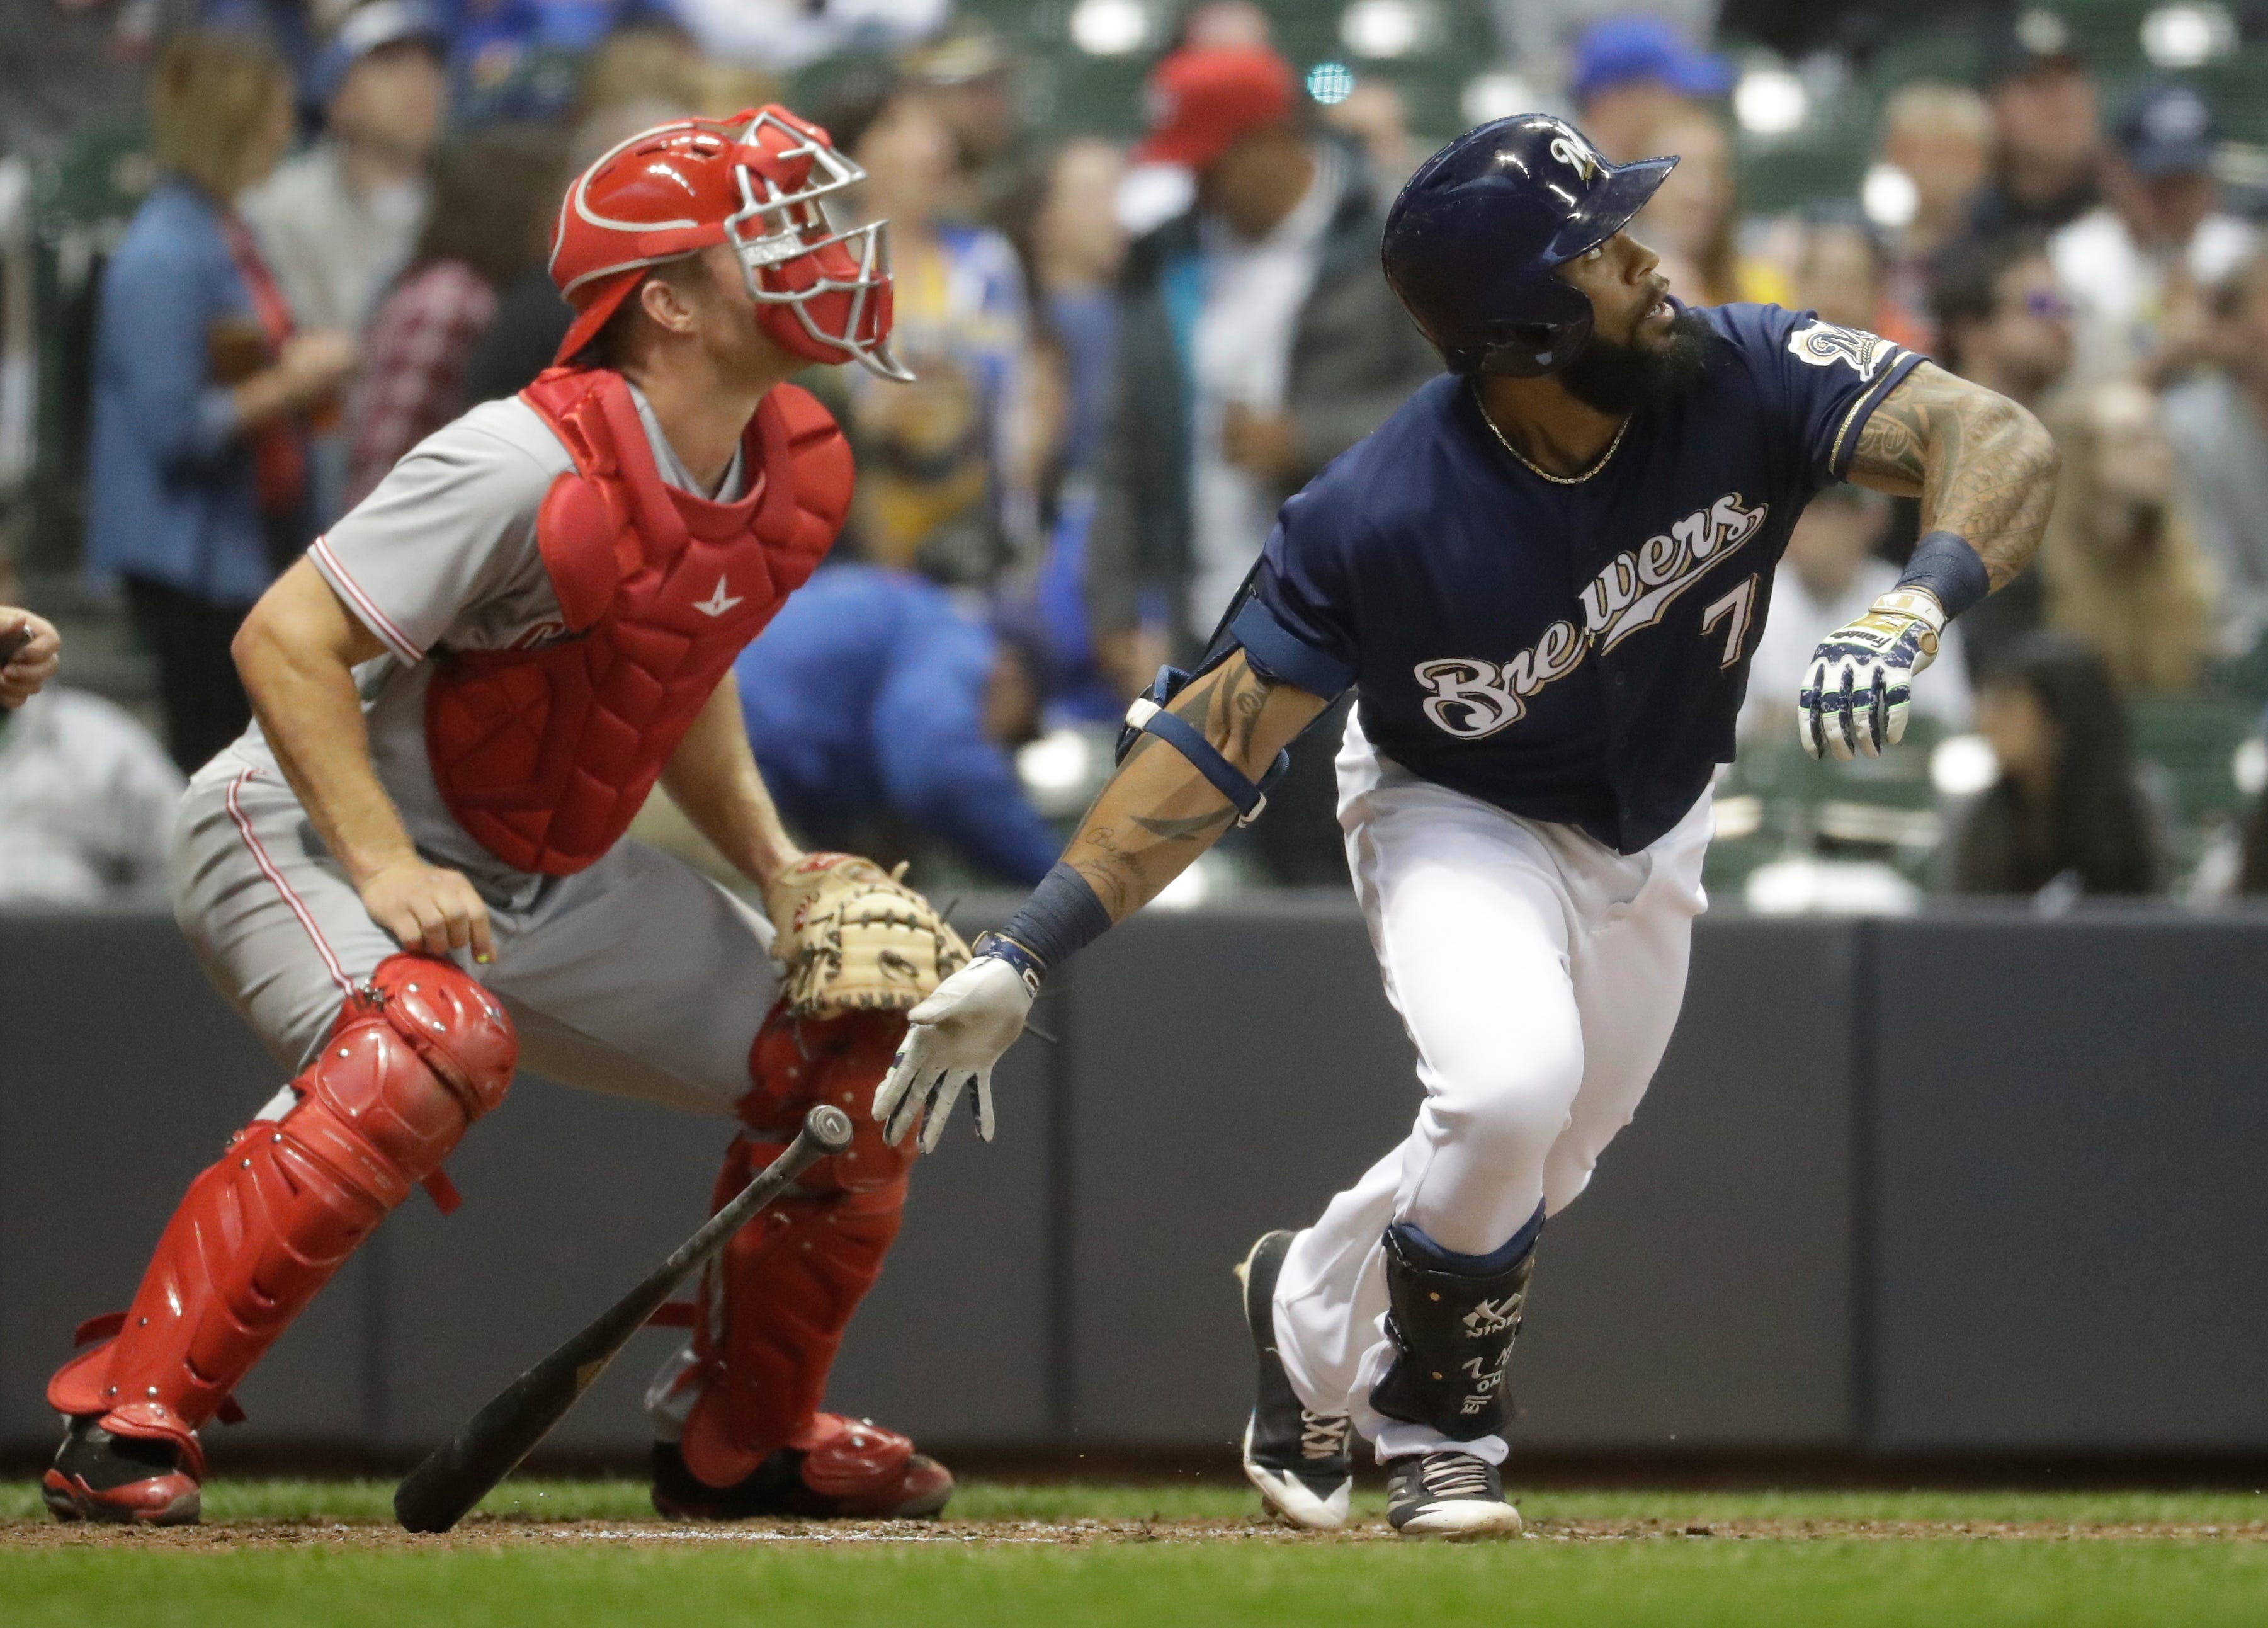 Brewers 11, Reds 7: Thames belts two more homers